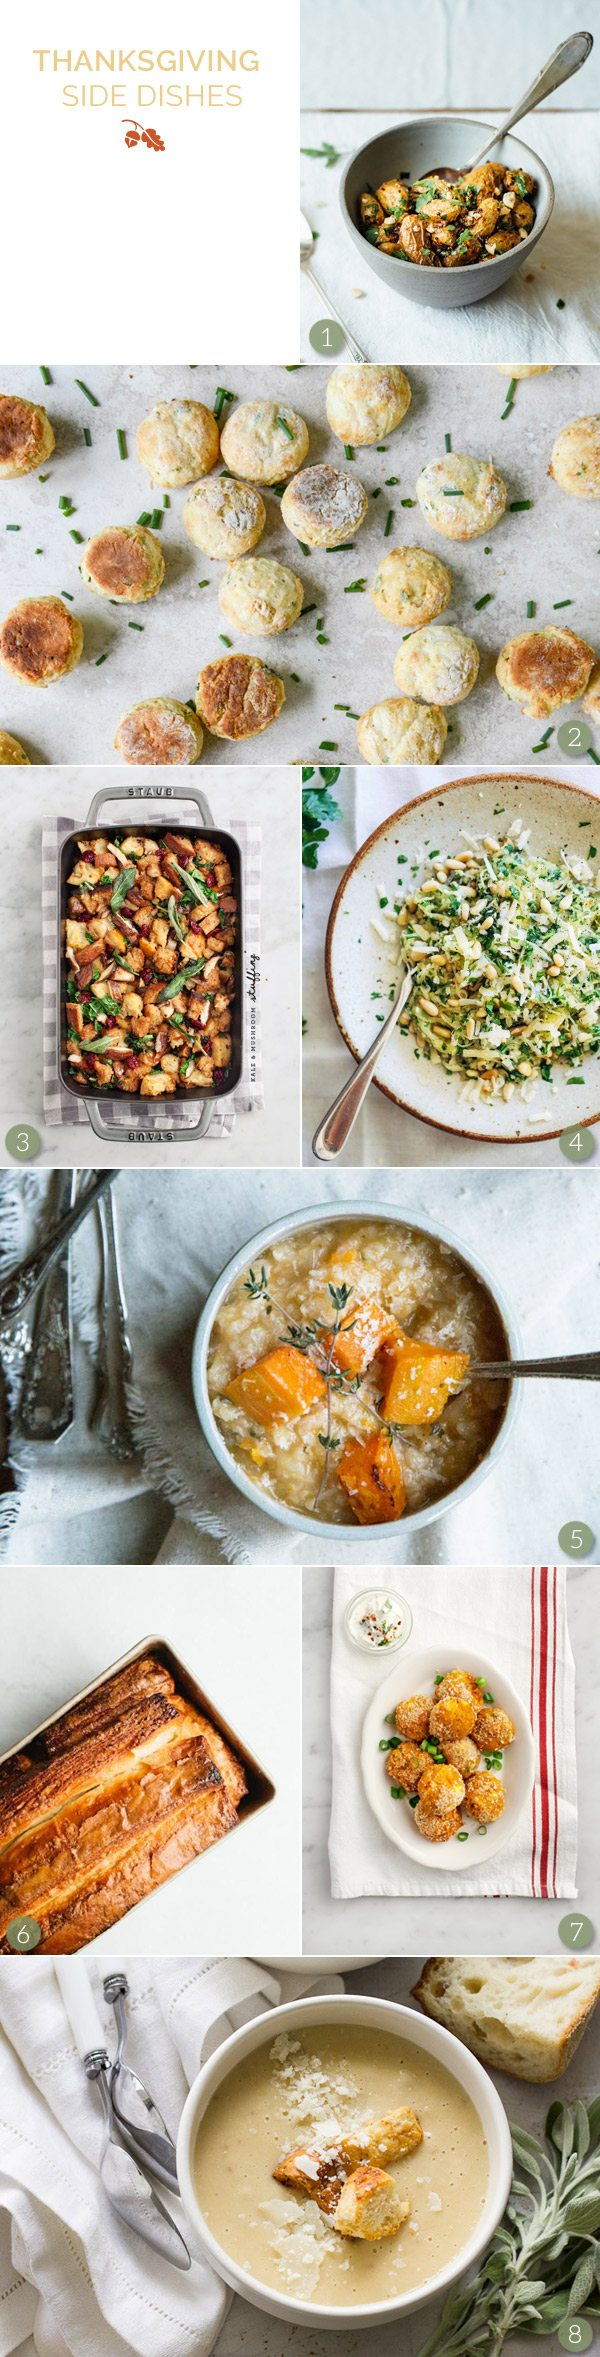 Vegetarian and Vegan Thanksgiving Dishes from @cydconverse